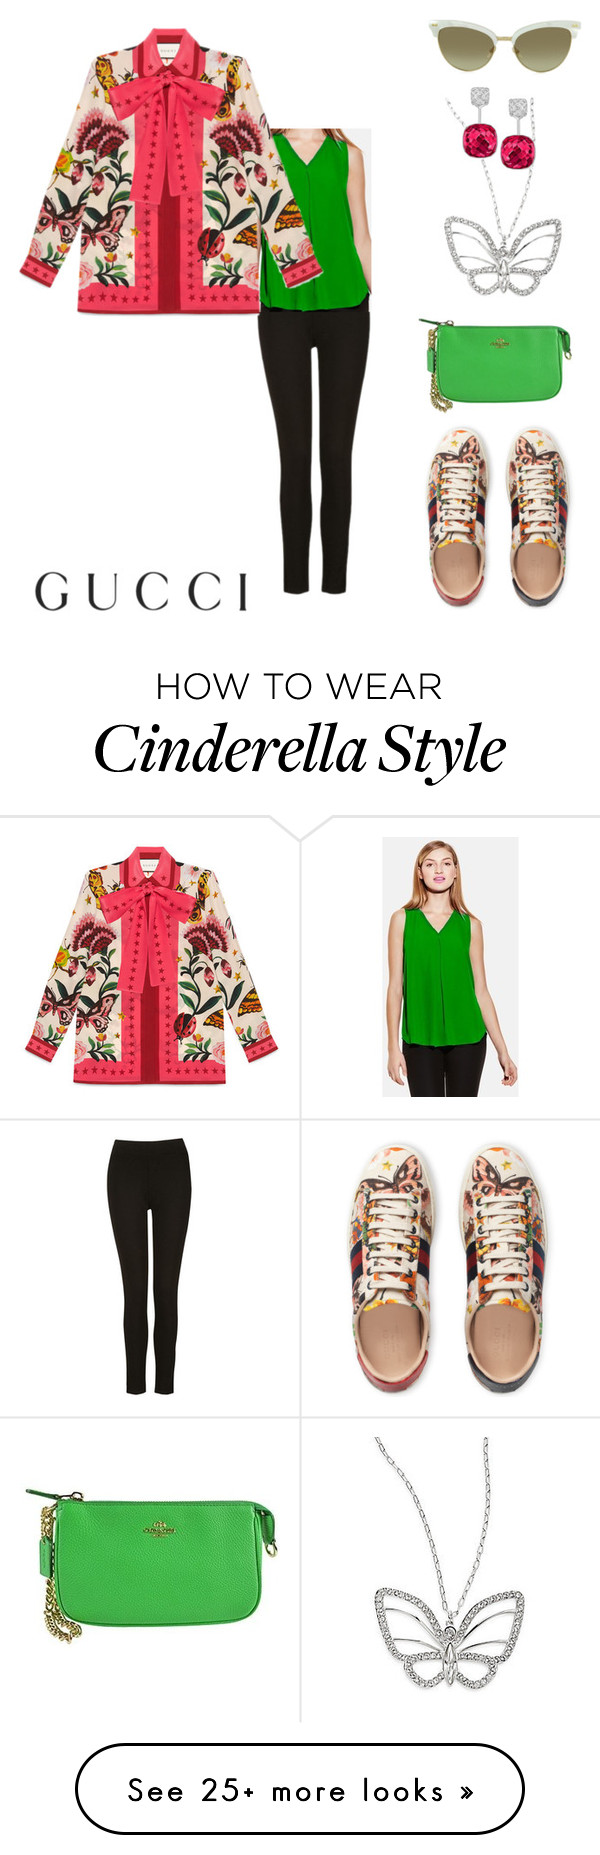 """""""Presenting the Gucci Garden Exclusive Collection: Contest Entry"""" by purplecc88criss on Polyvore featuring Swarovski, Vince Camuto, Gucci and Coach"""